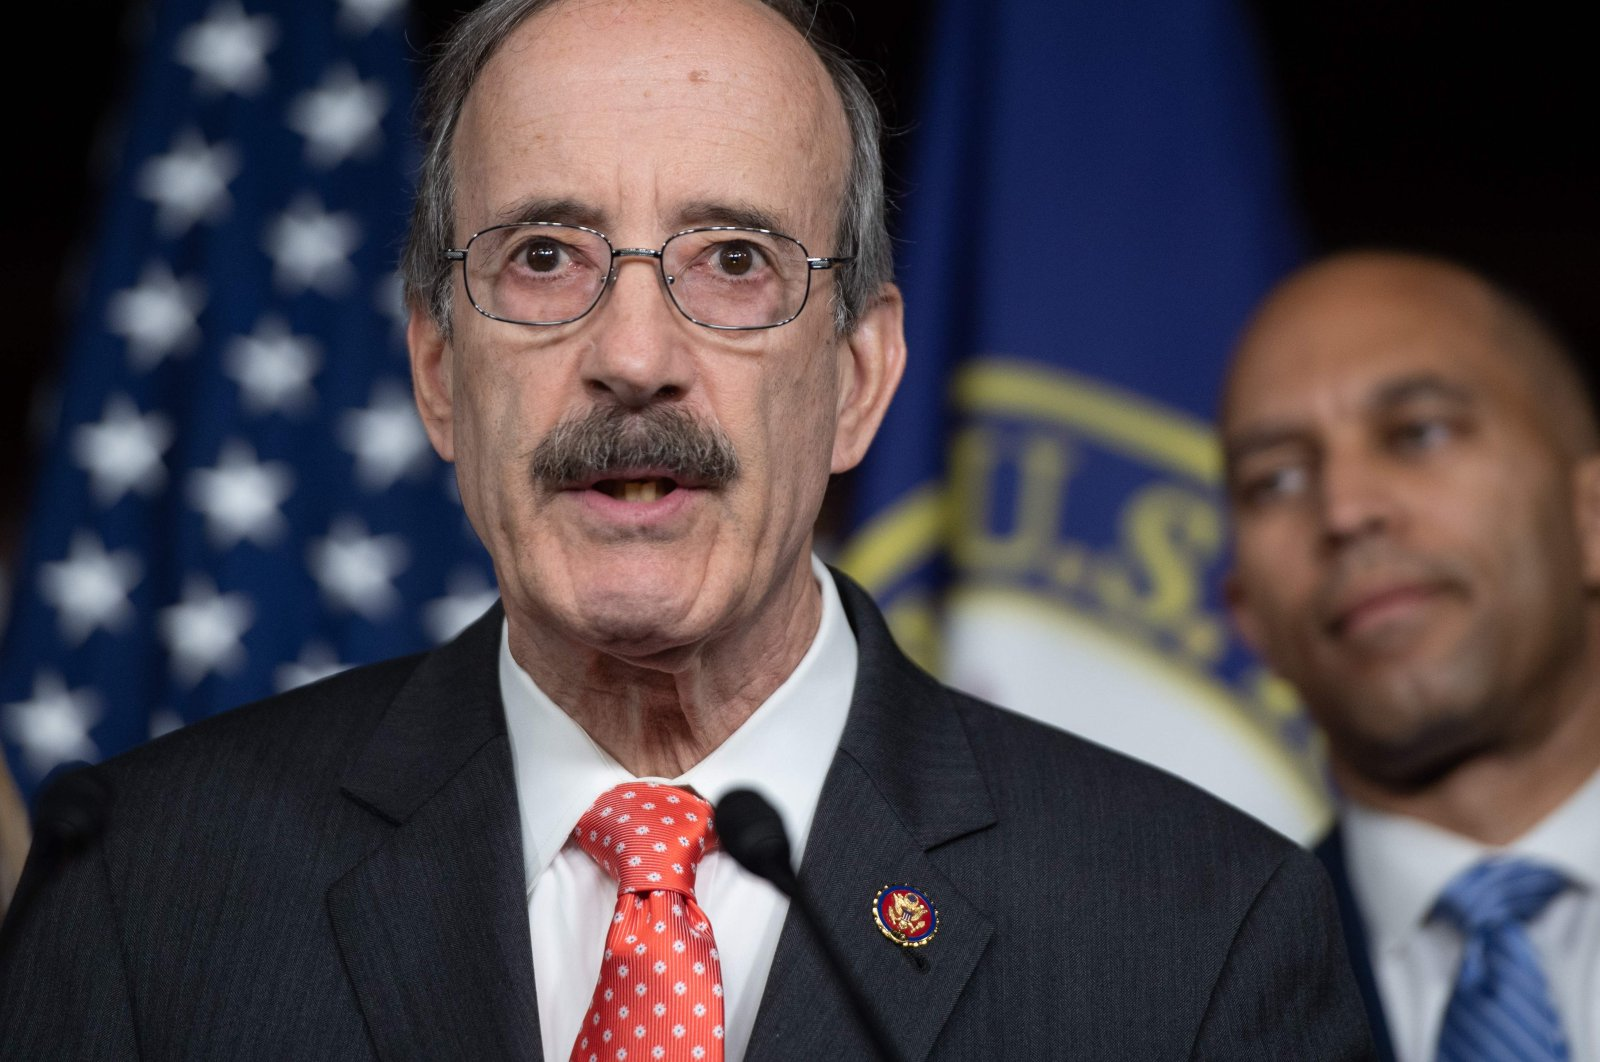 In this file photo from May 18, 2020, Representative Eliot Engel, Democrat for California, speaks during a press conference on Capitol Hill in Washington. Engel claims the State Department watchdog abruptly fired by President Donald Trump was probing his controversial bypassing of Congress to sell weapons to Saudi Arabia, Washington D.C.